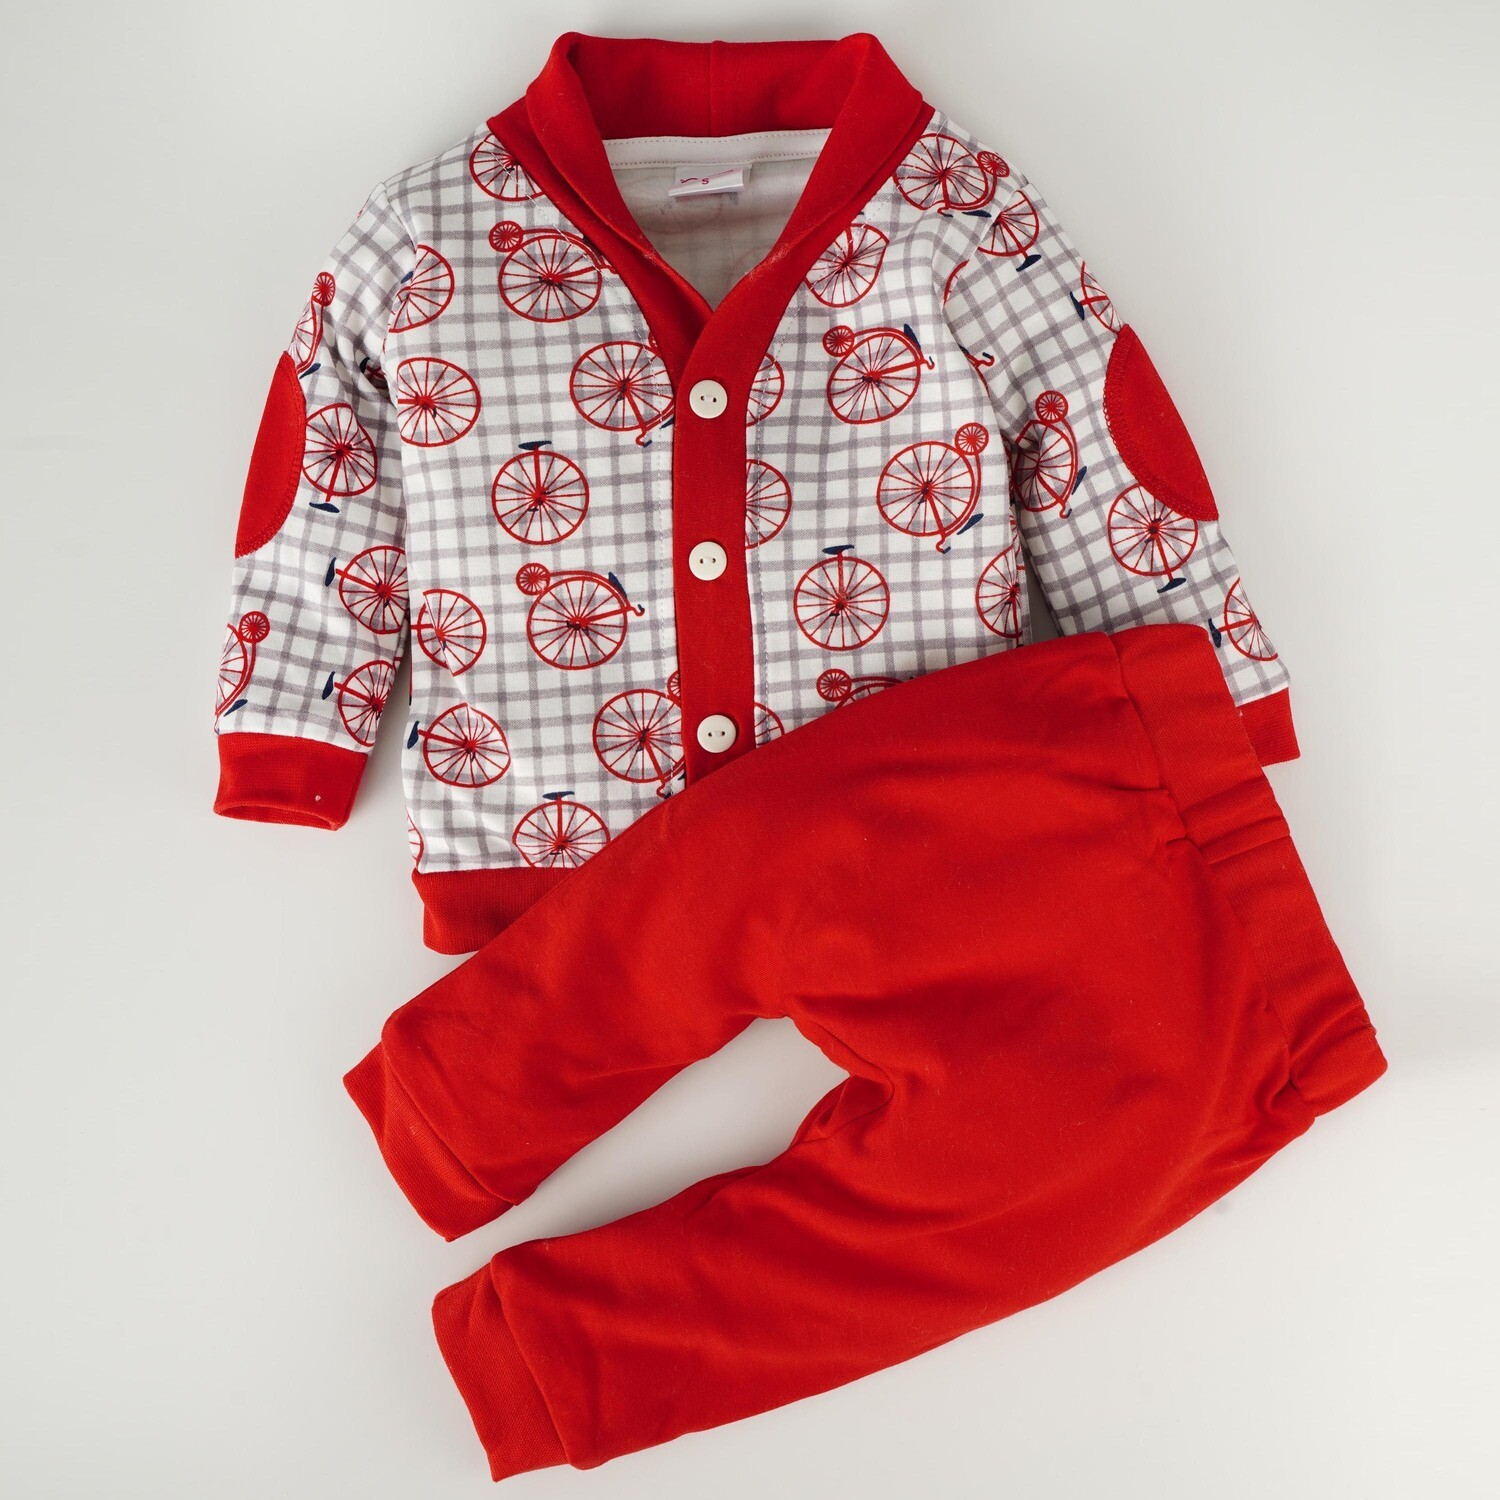 Ryker Red Printed Full Sleeve Top with Red Long Pants XXL (24-30 Months)